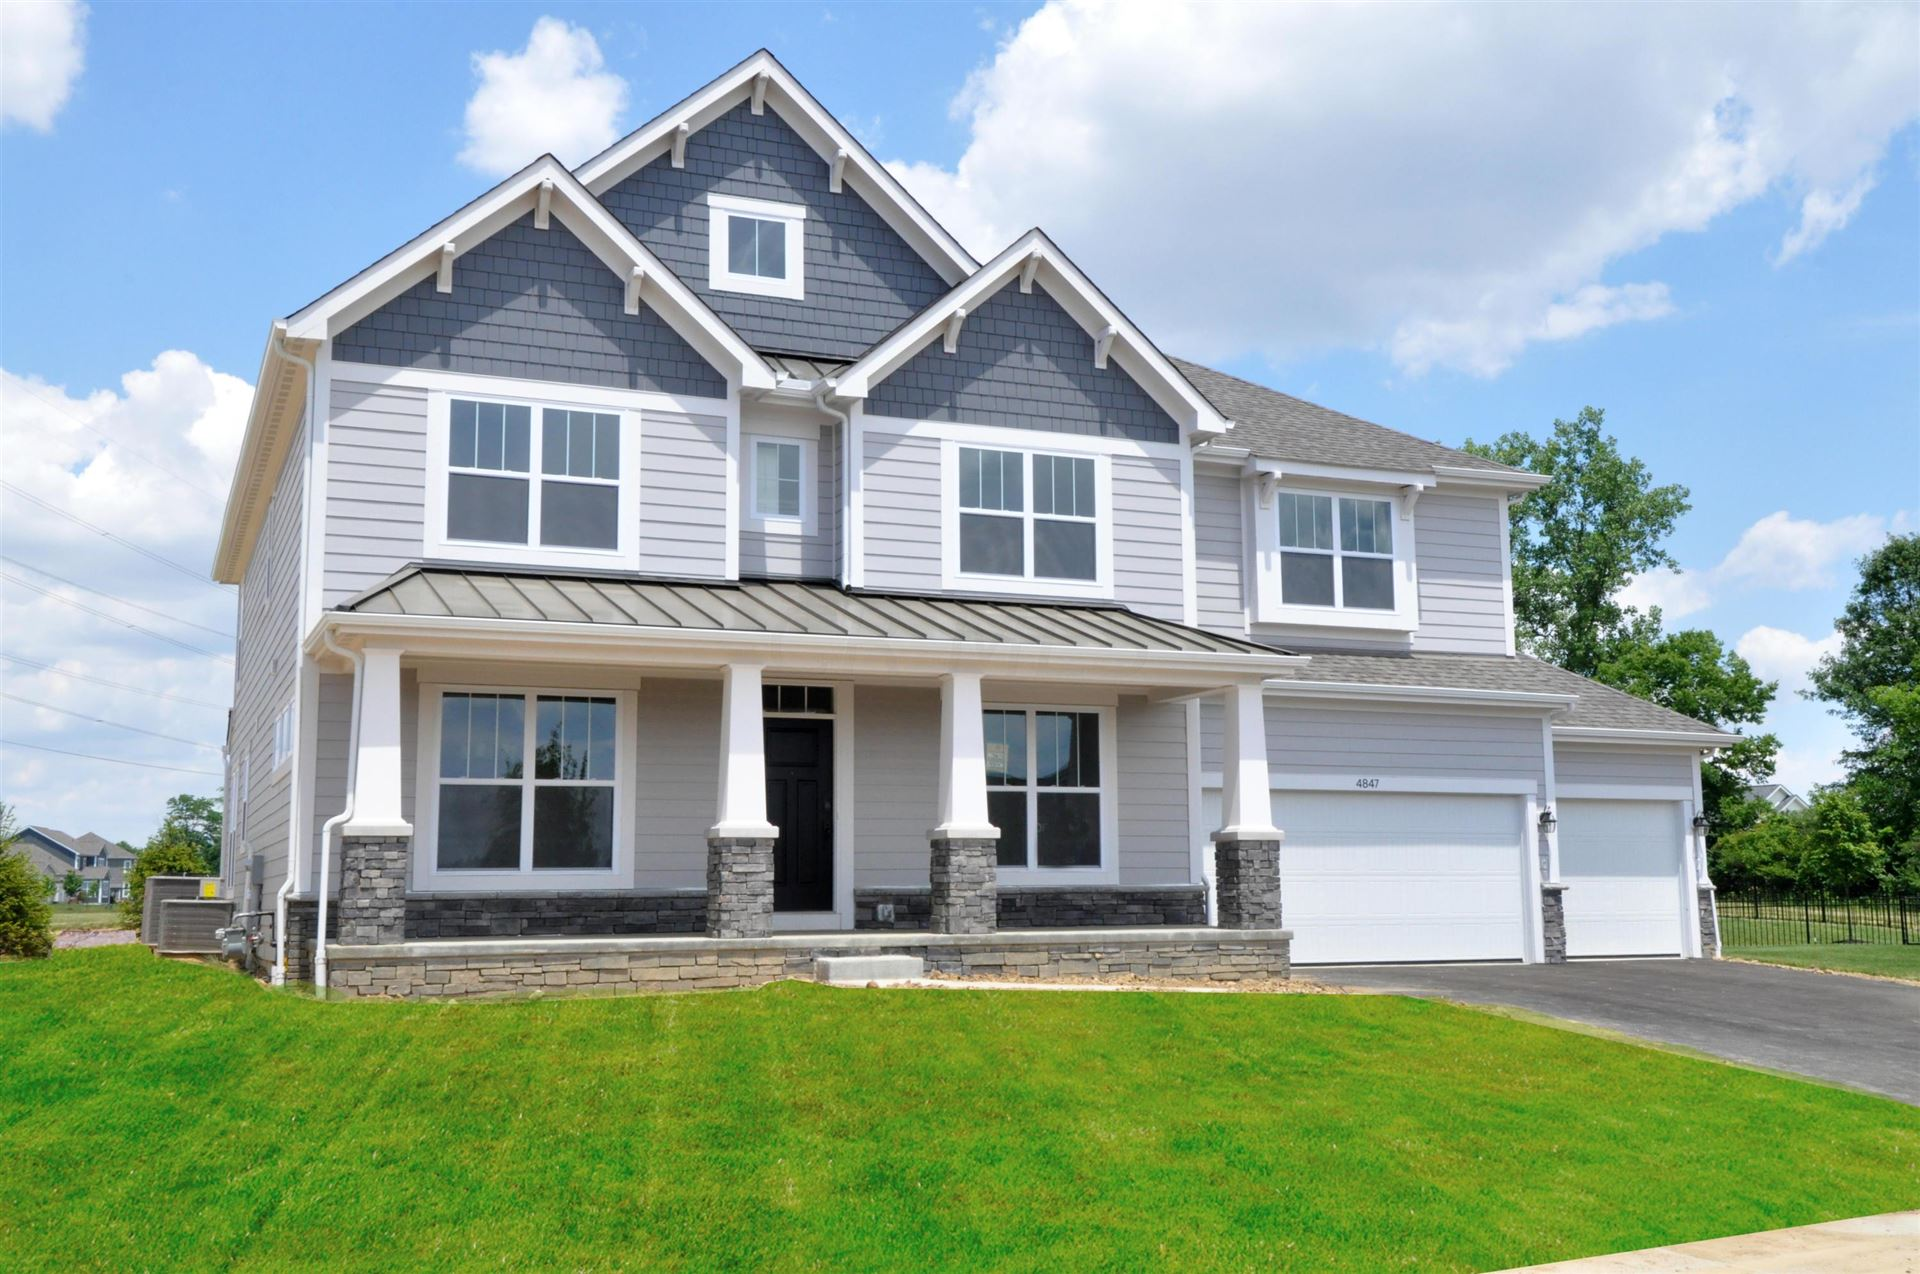 4847 Hunters Bend Court #Lot 3640, Powell, OH 43065 - #: 220011039